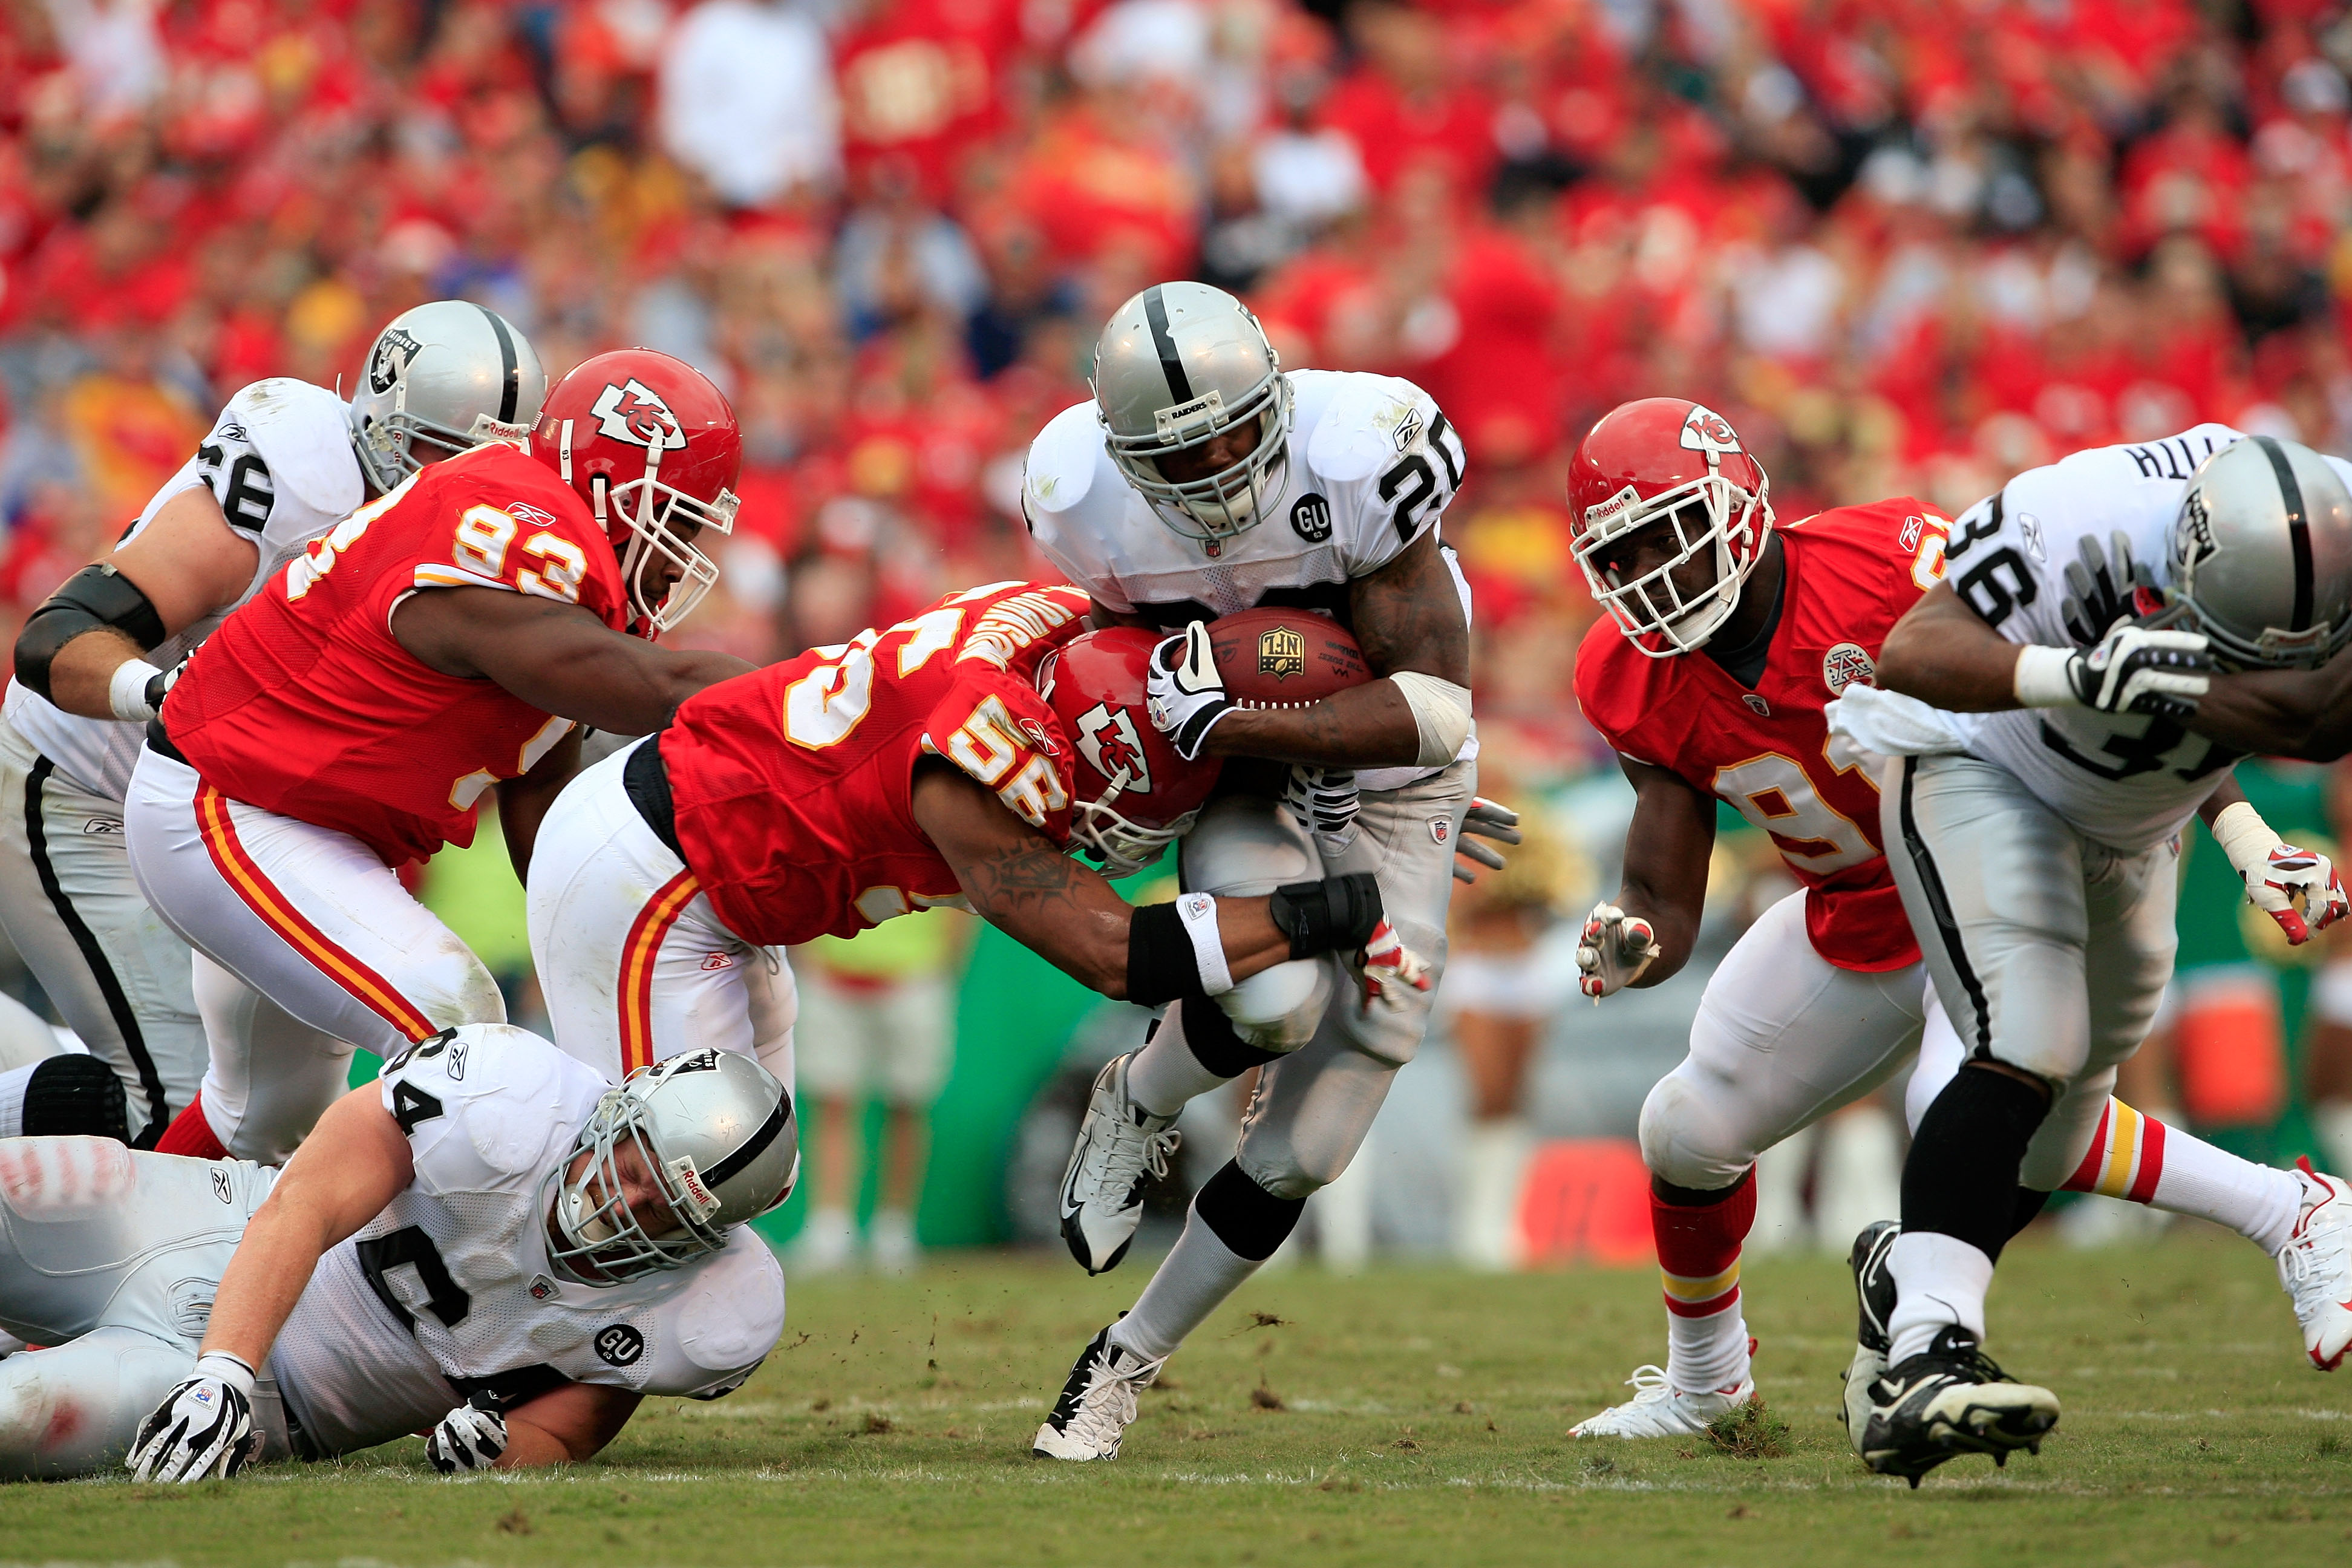 KANSAS CITY, MO - SEPTEMBER 14:  Darren McFadden #20 of the Oakland Raiders carries the ball as Derrick Johnson #56 of the Kansas City Chiefs defends during the first half fo the game on September 14, 2008 at Arrowhead Stadium in Kansas City, Missouri.  (